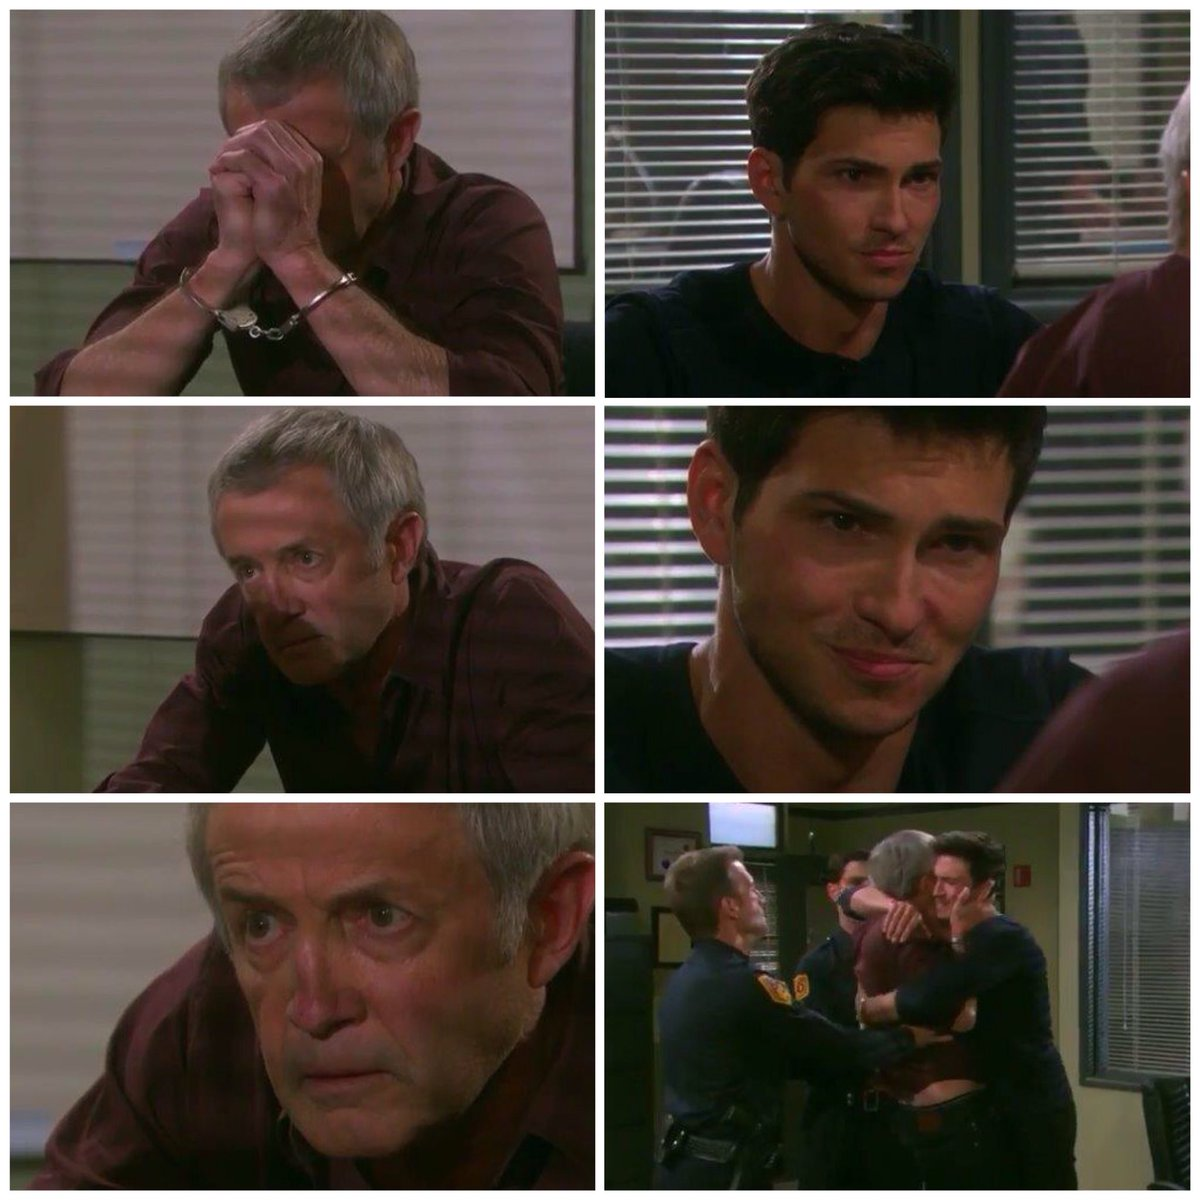 #OnThisDay in 2015, James Read last appeared as Clyde Weston, ending a 1 year run #Days @jamzread @MrRobertScott<br>http://pic.twitter.com/5DVOsmantN